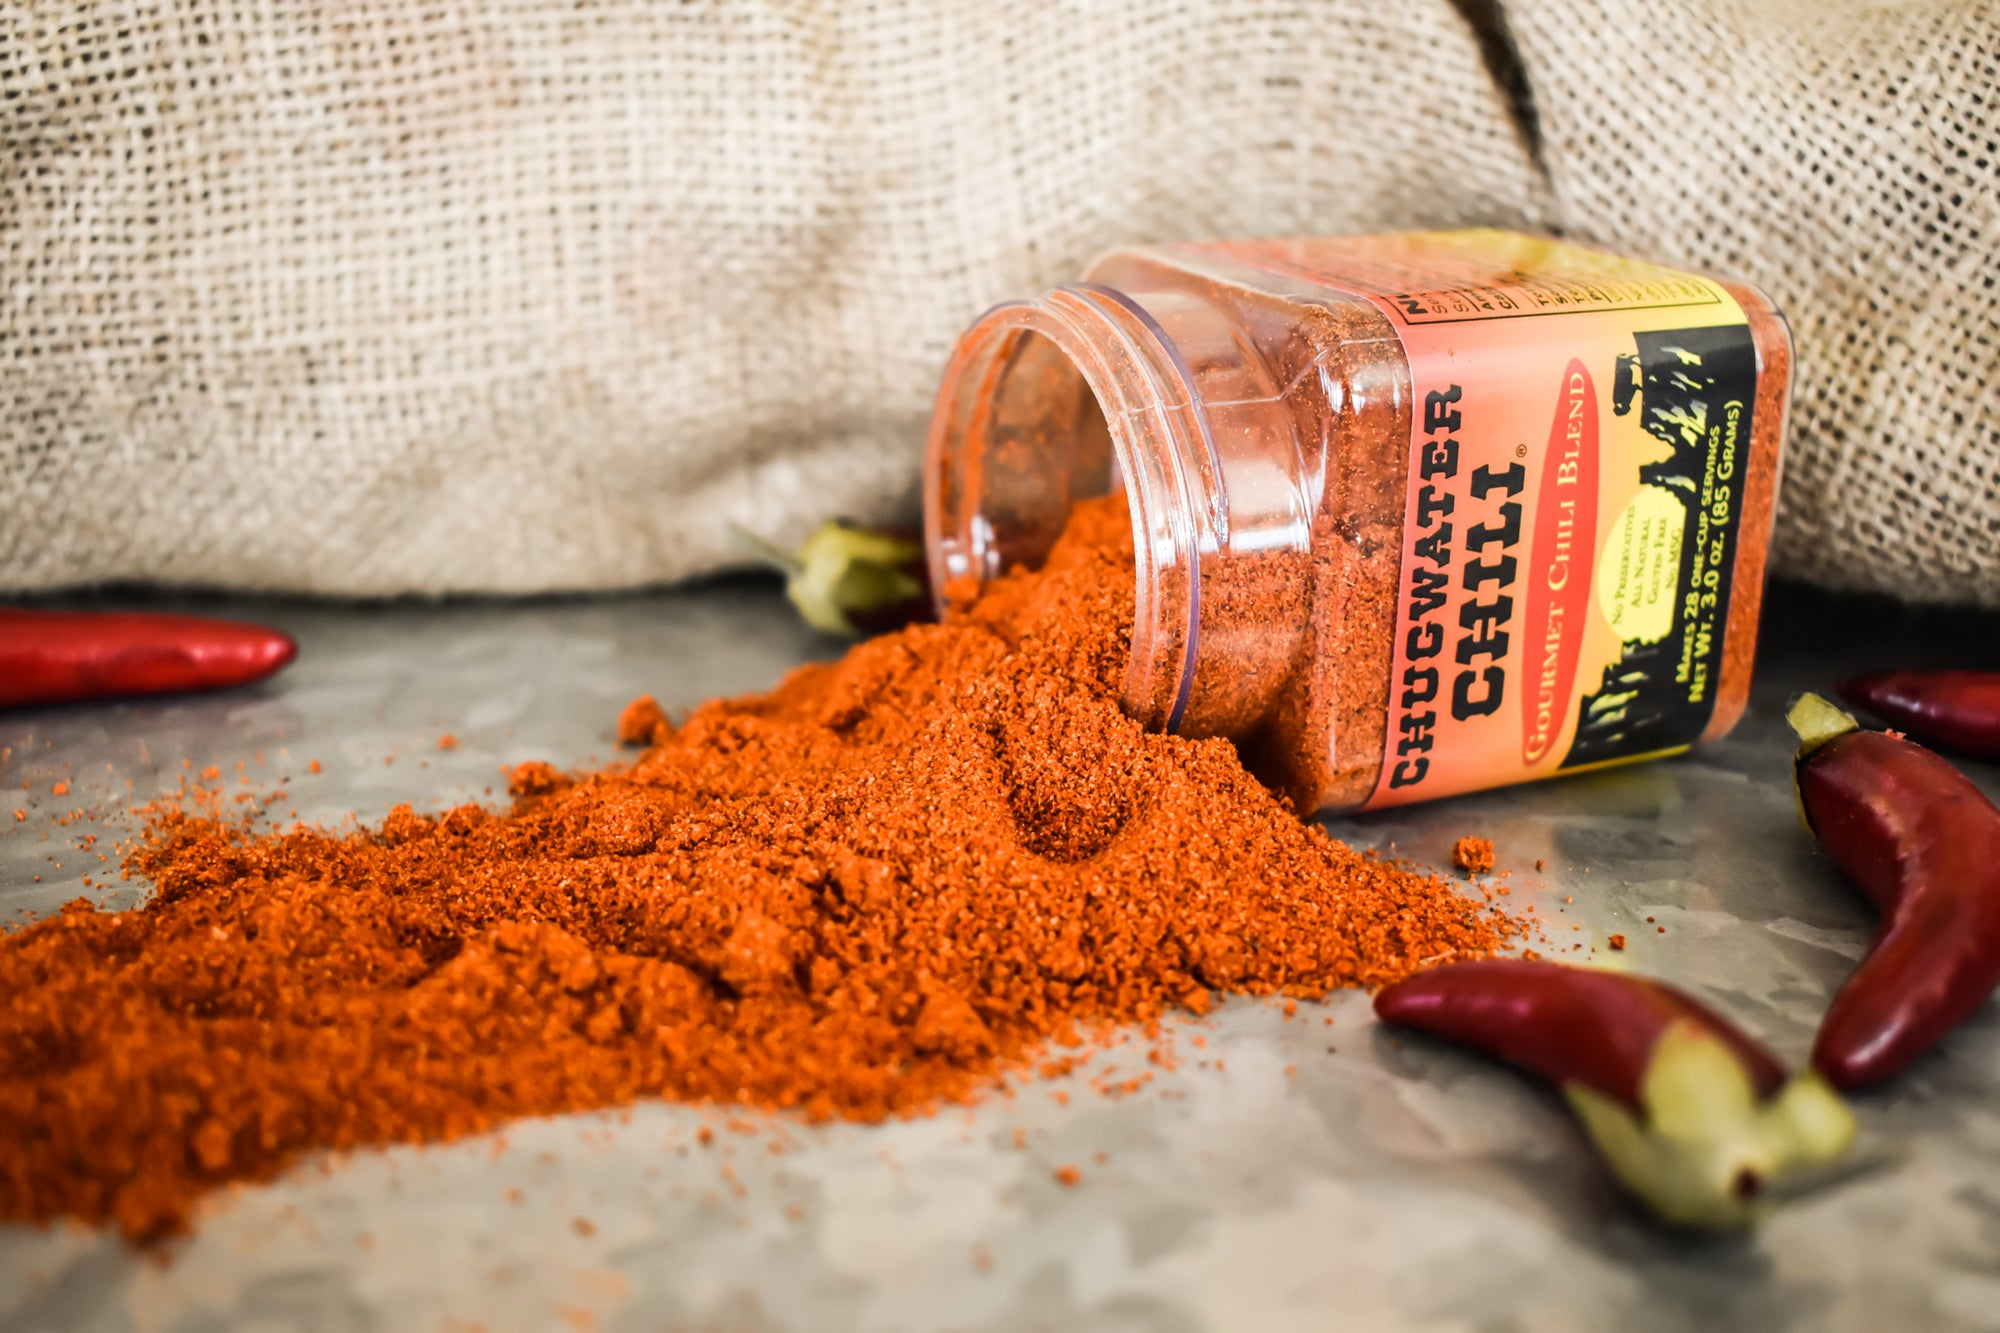 Background image of Chugwater Chili Seasoning